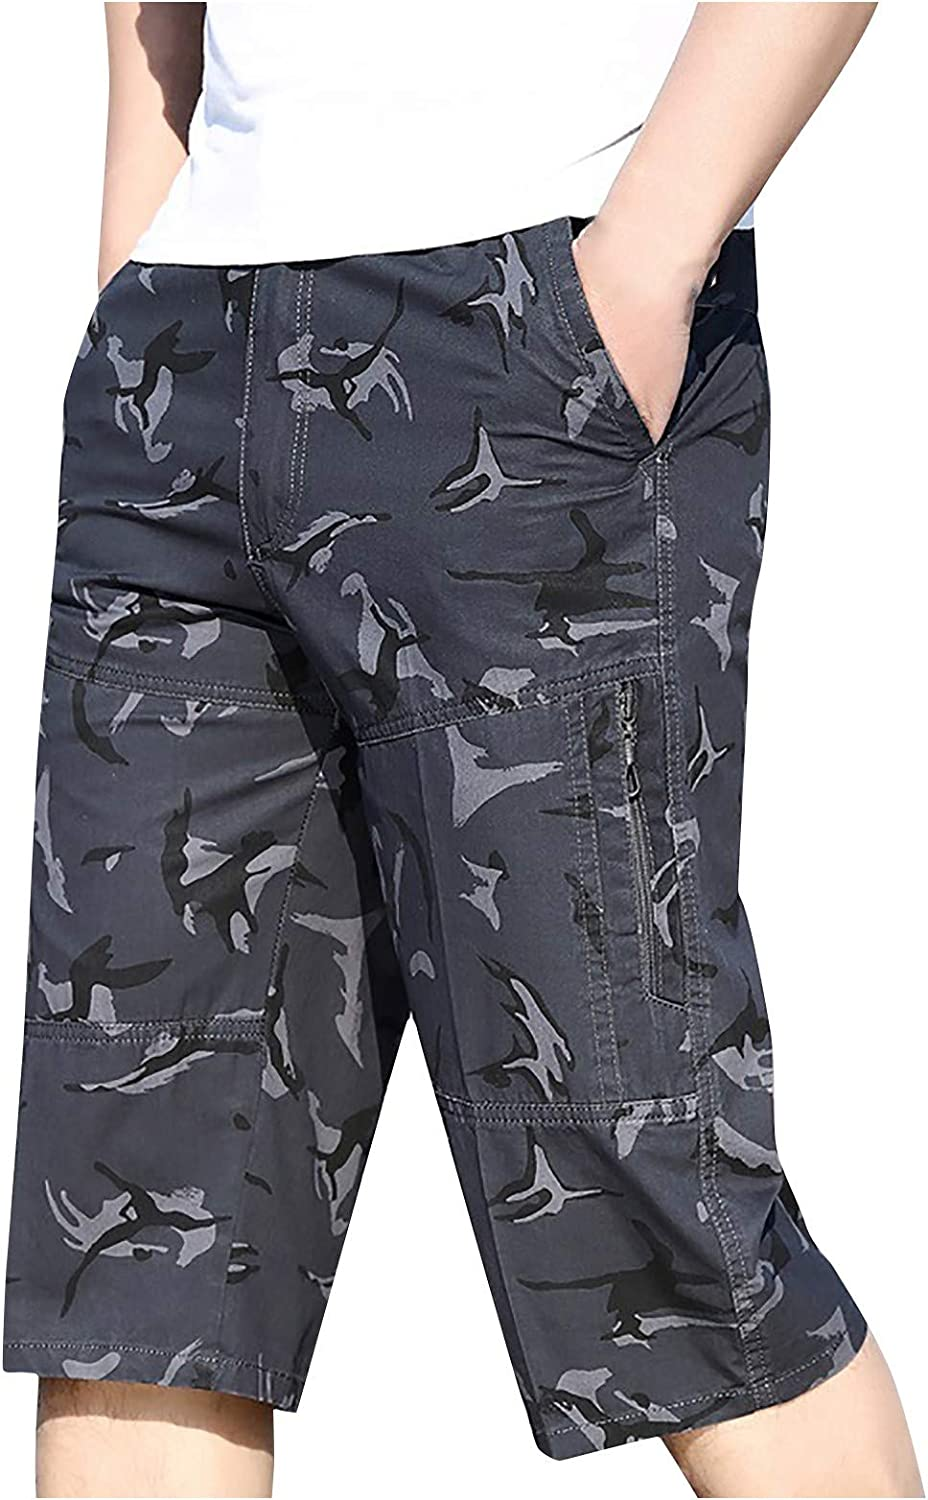 Cargo Shorts for Men,Kcocoo Plus Size Casual Classic Fit Short Below Knee Length with Multi-Pockets Sweatpant 3/4 Capri Pants